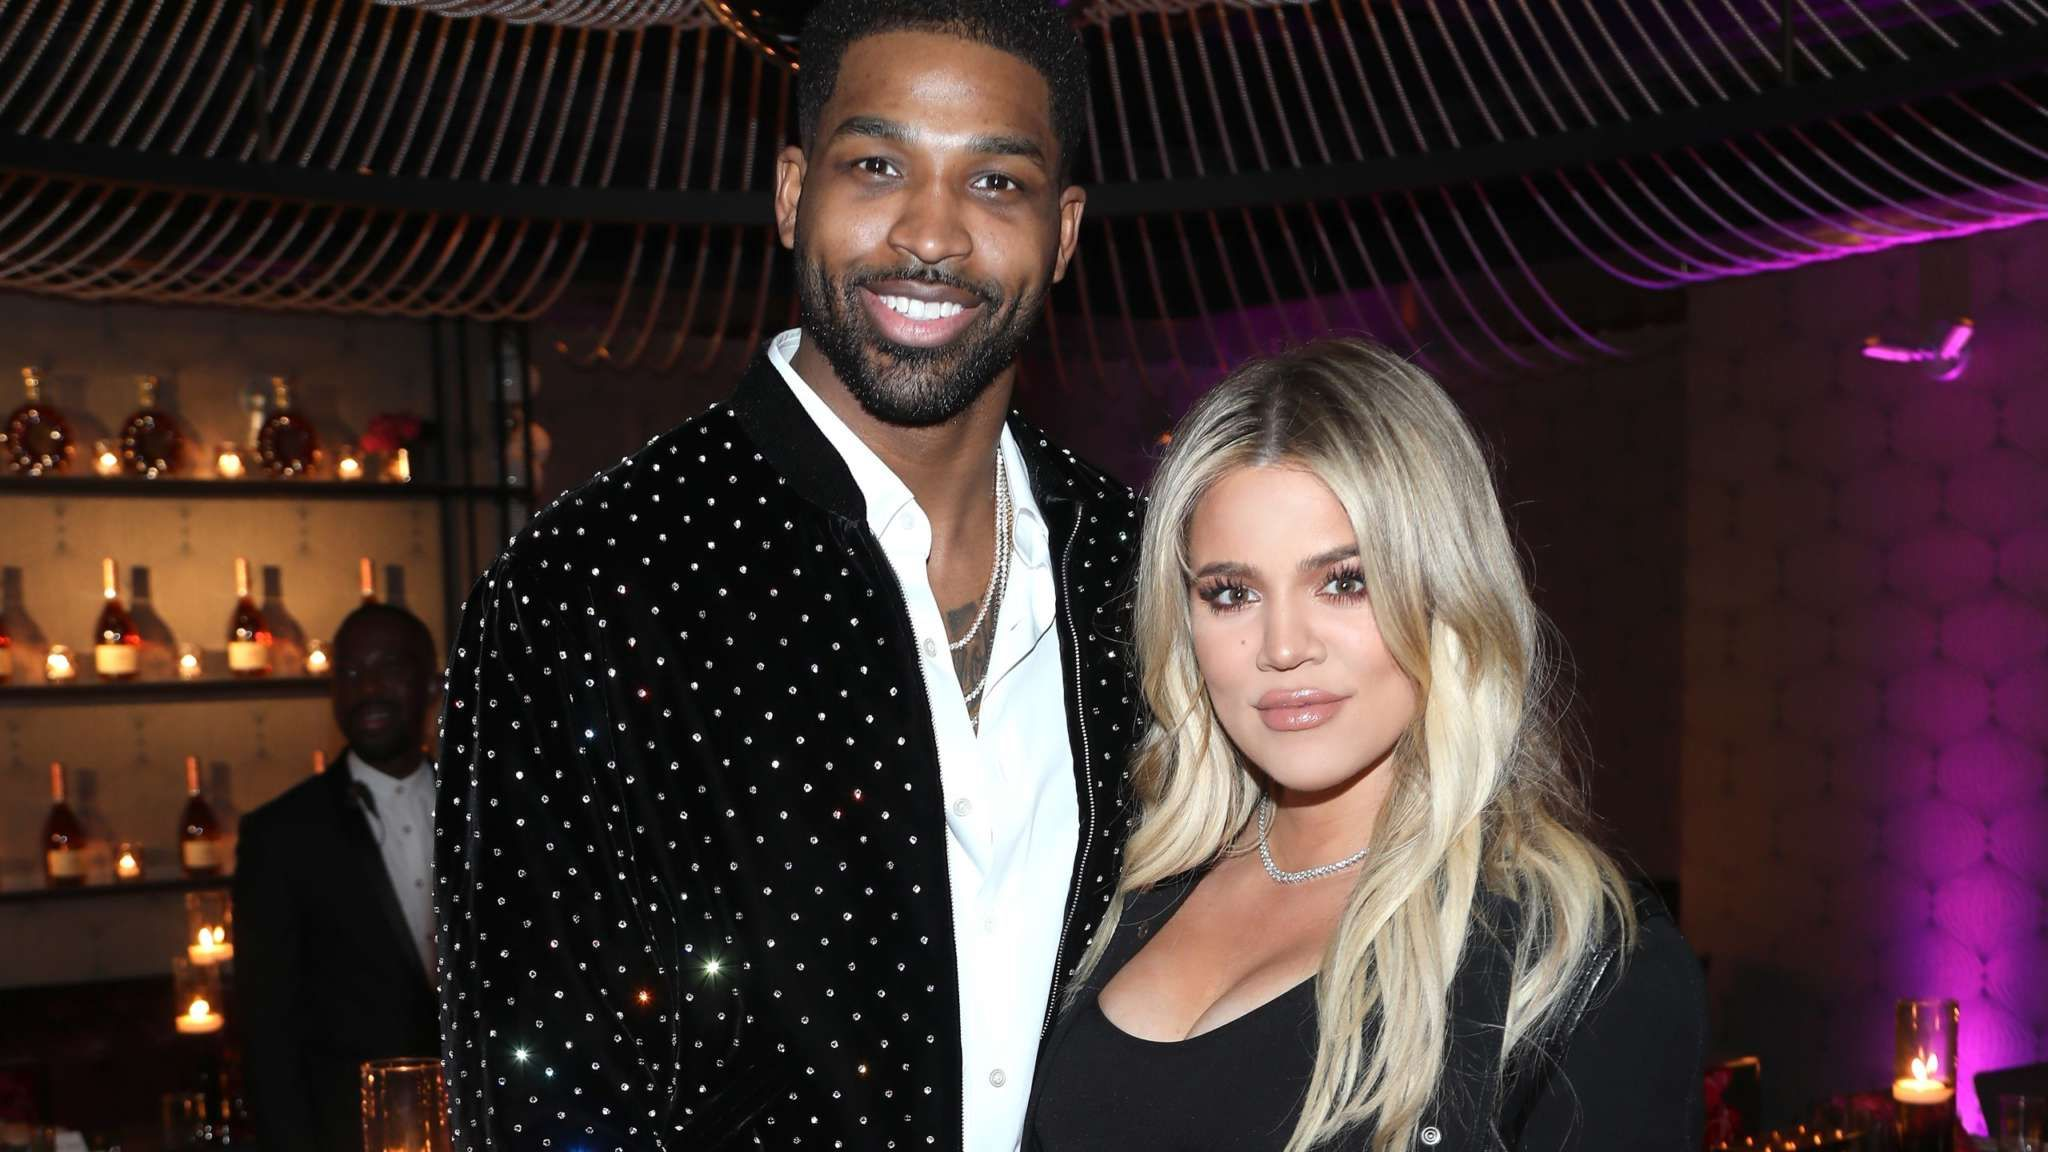 KUWK: Khloe Kardashian Explains Why She Wants Tristan Thompson In Her Life In Emotional Rant #khloekardashian